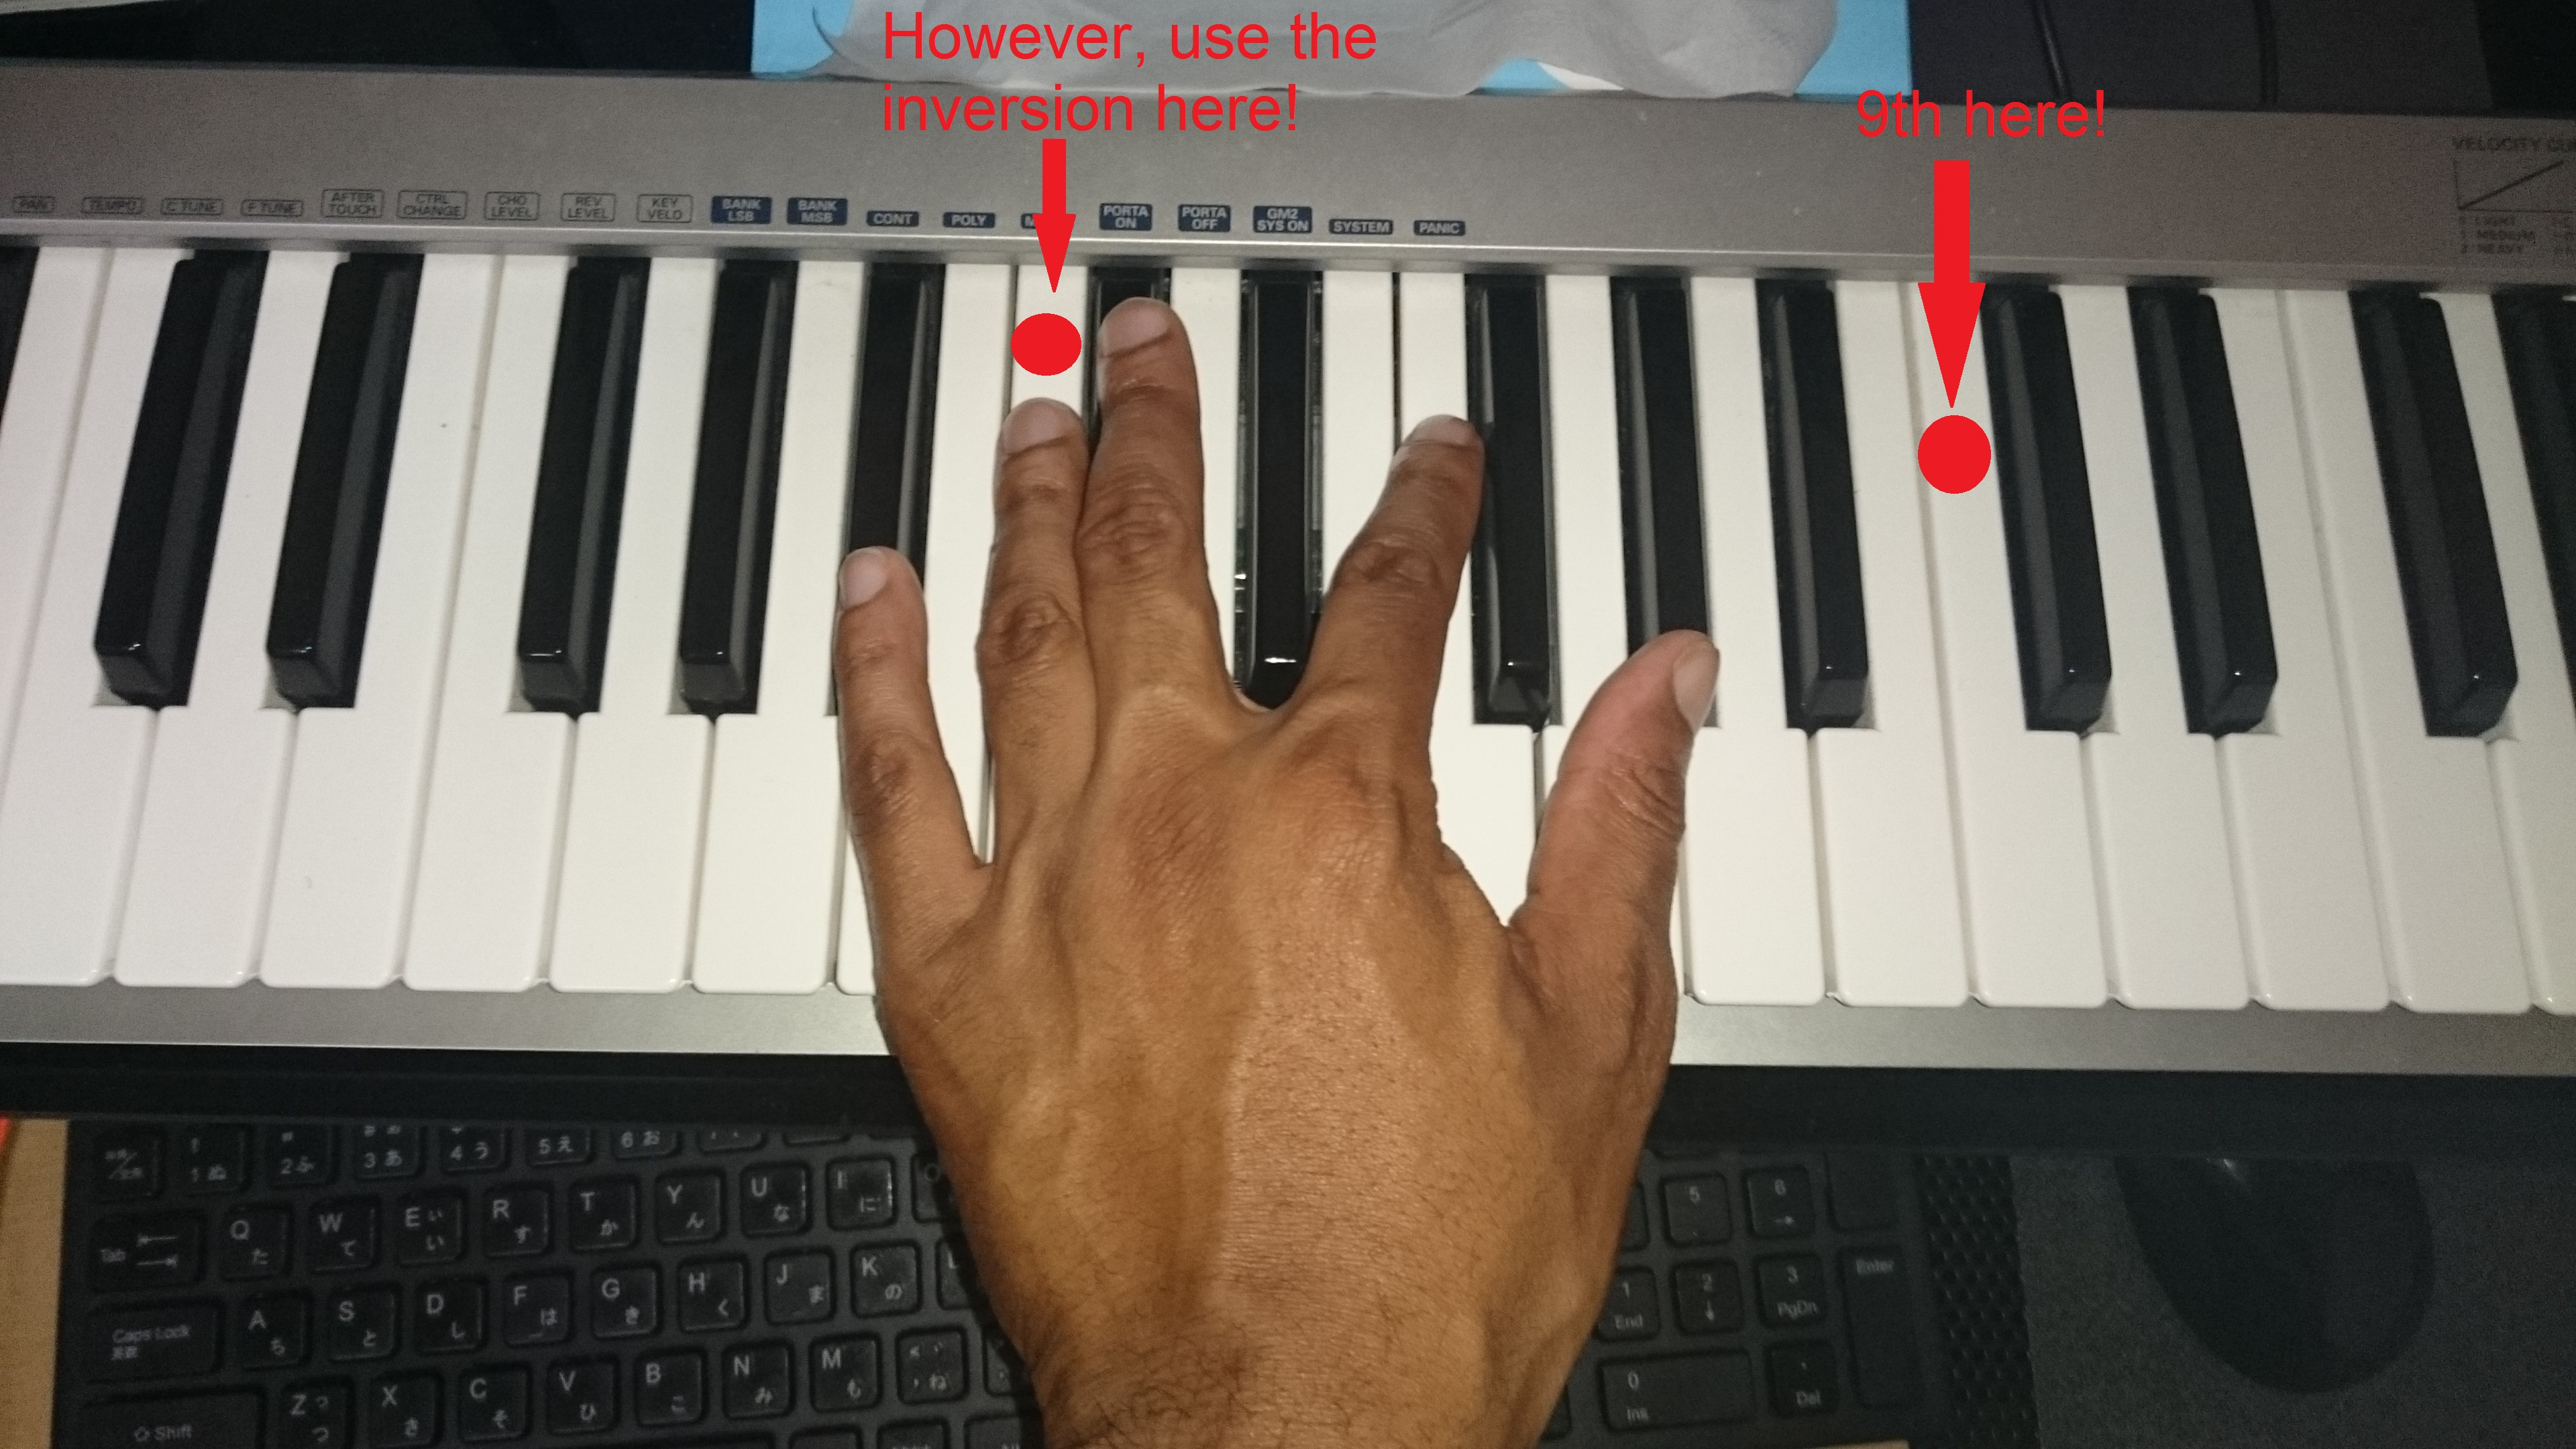 Ru0026B Piano tutorial - playing 9ths with one hand - Soulful Keys - Neo Soul and Ru0026B Production